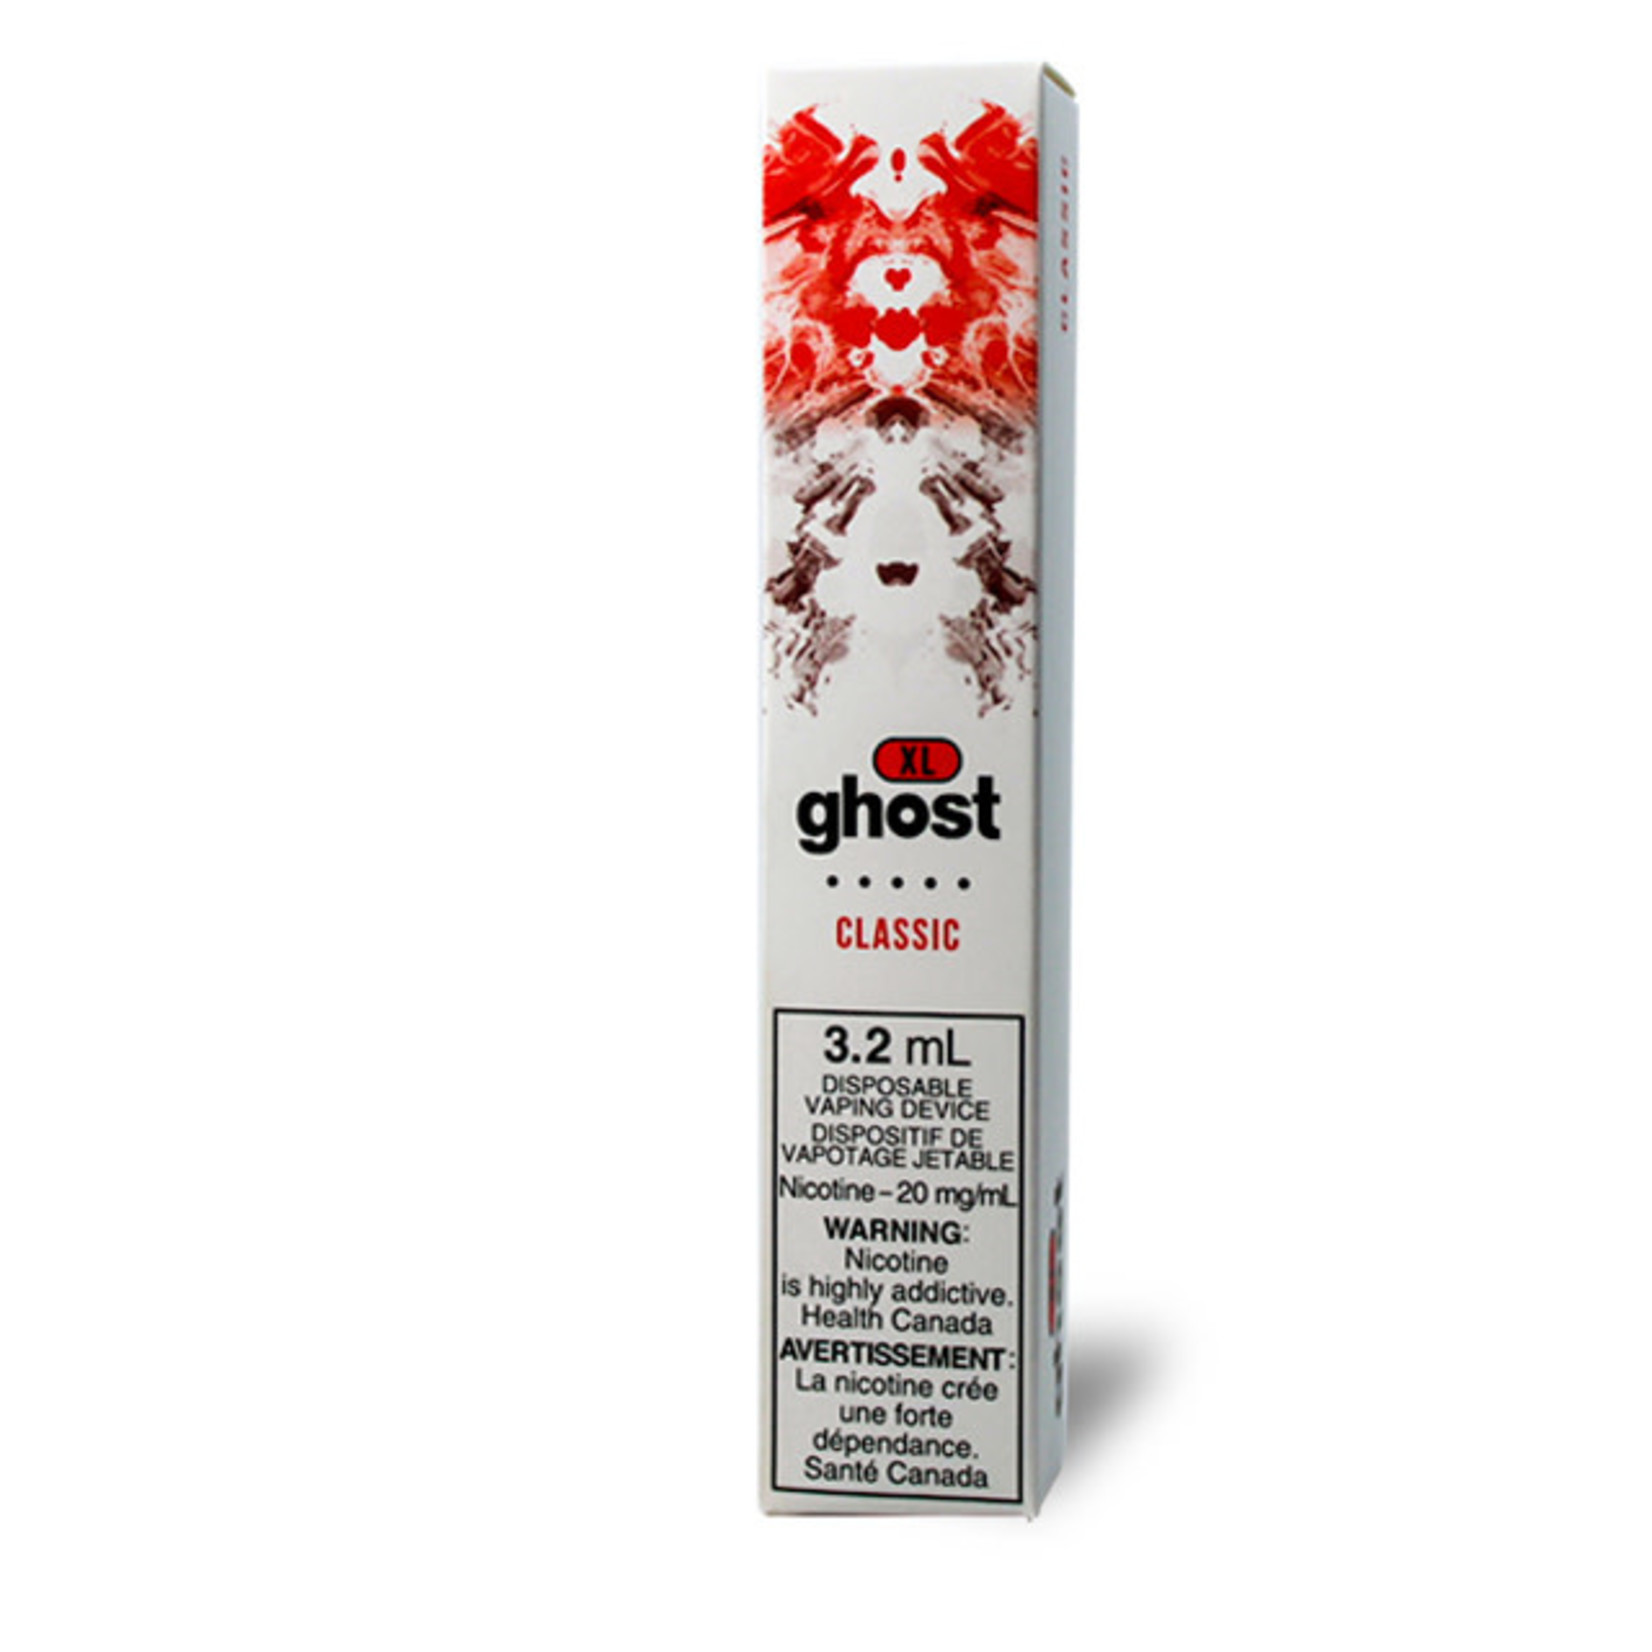 GHOST XL 800 PUFF Disposable Classic